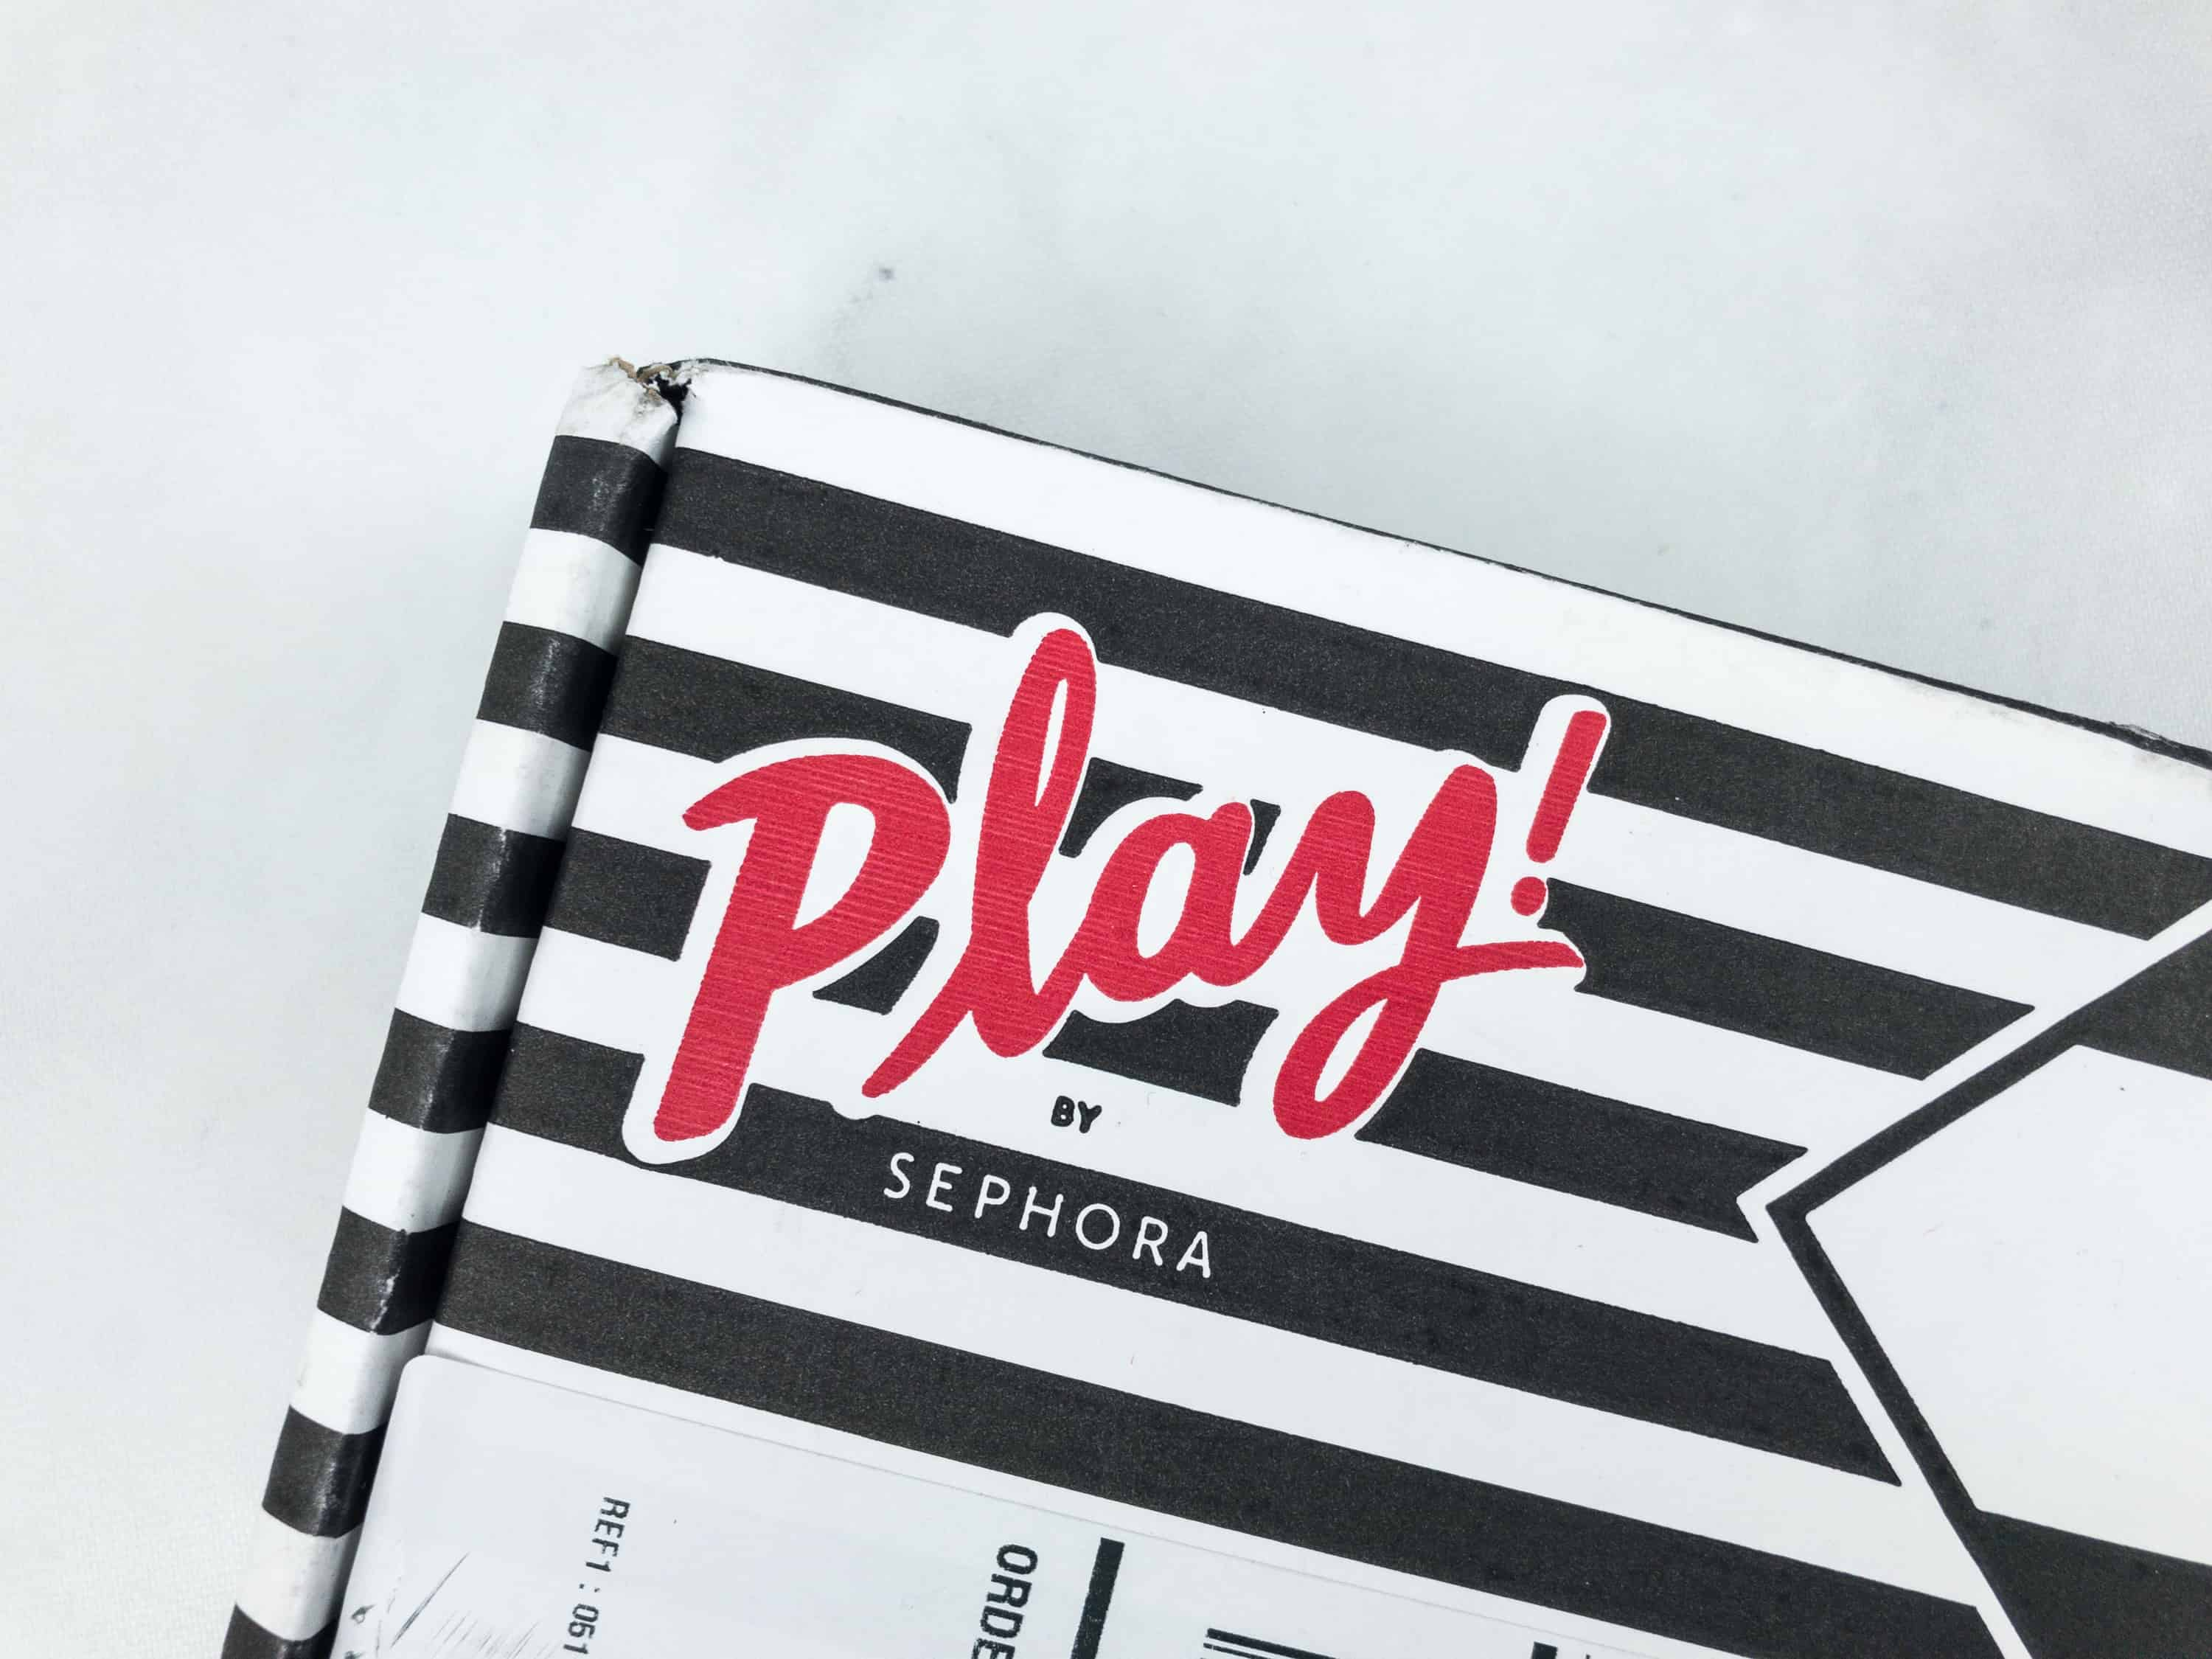 Play! by Sephora May 2018 Subscription Box Review - hello